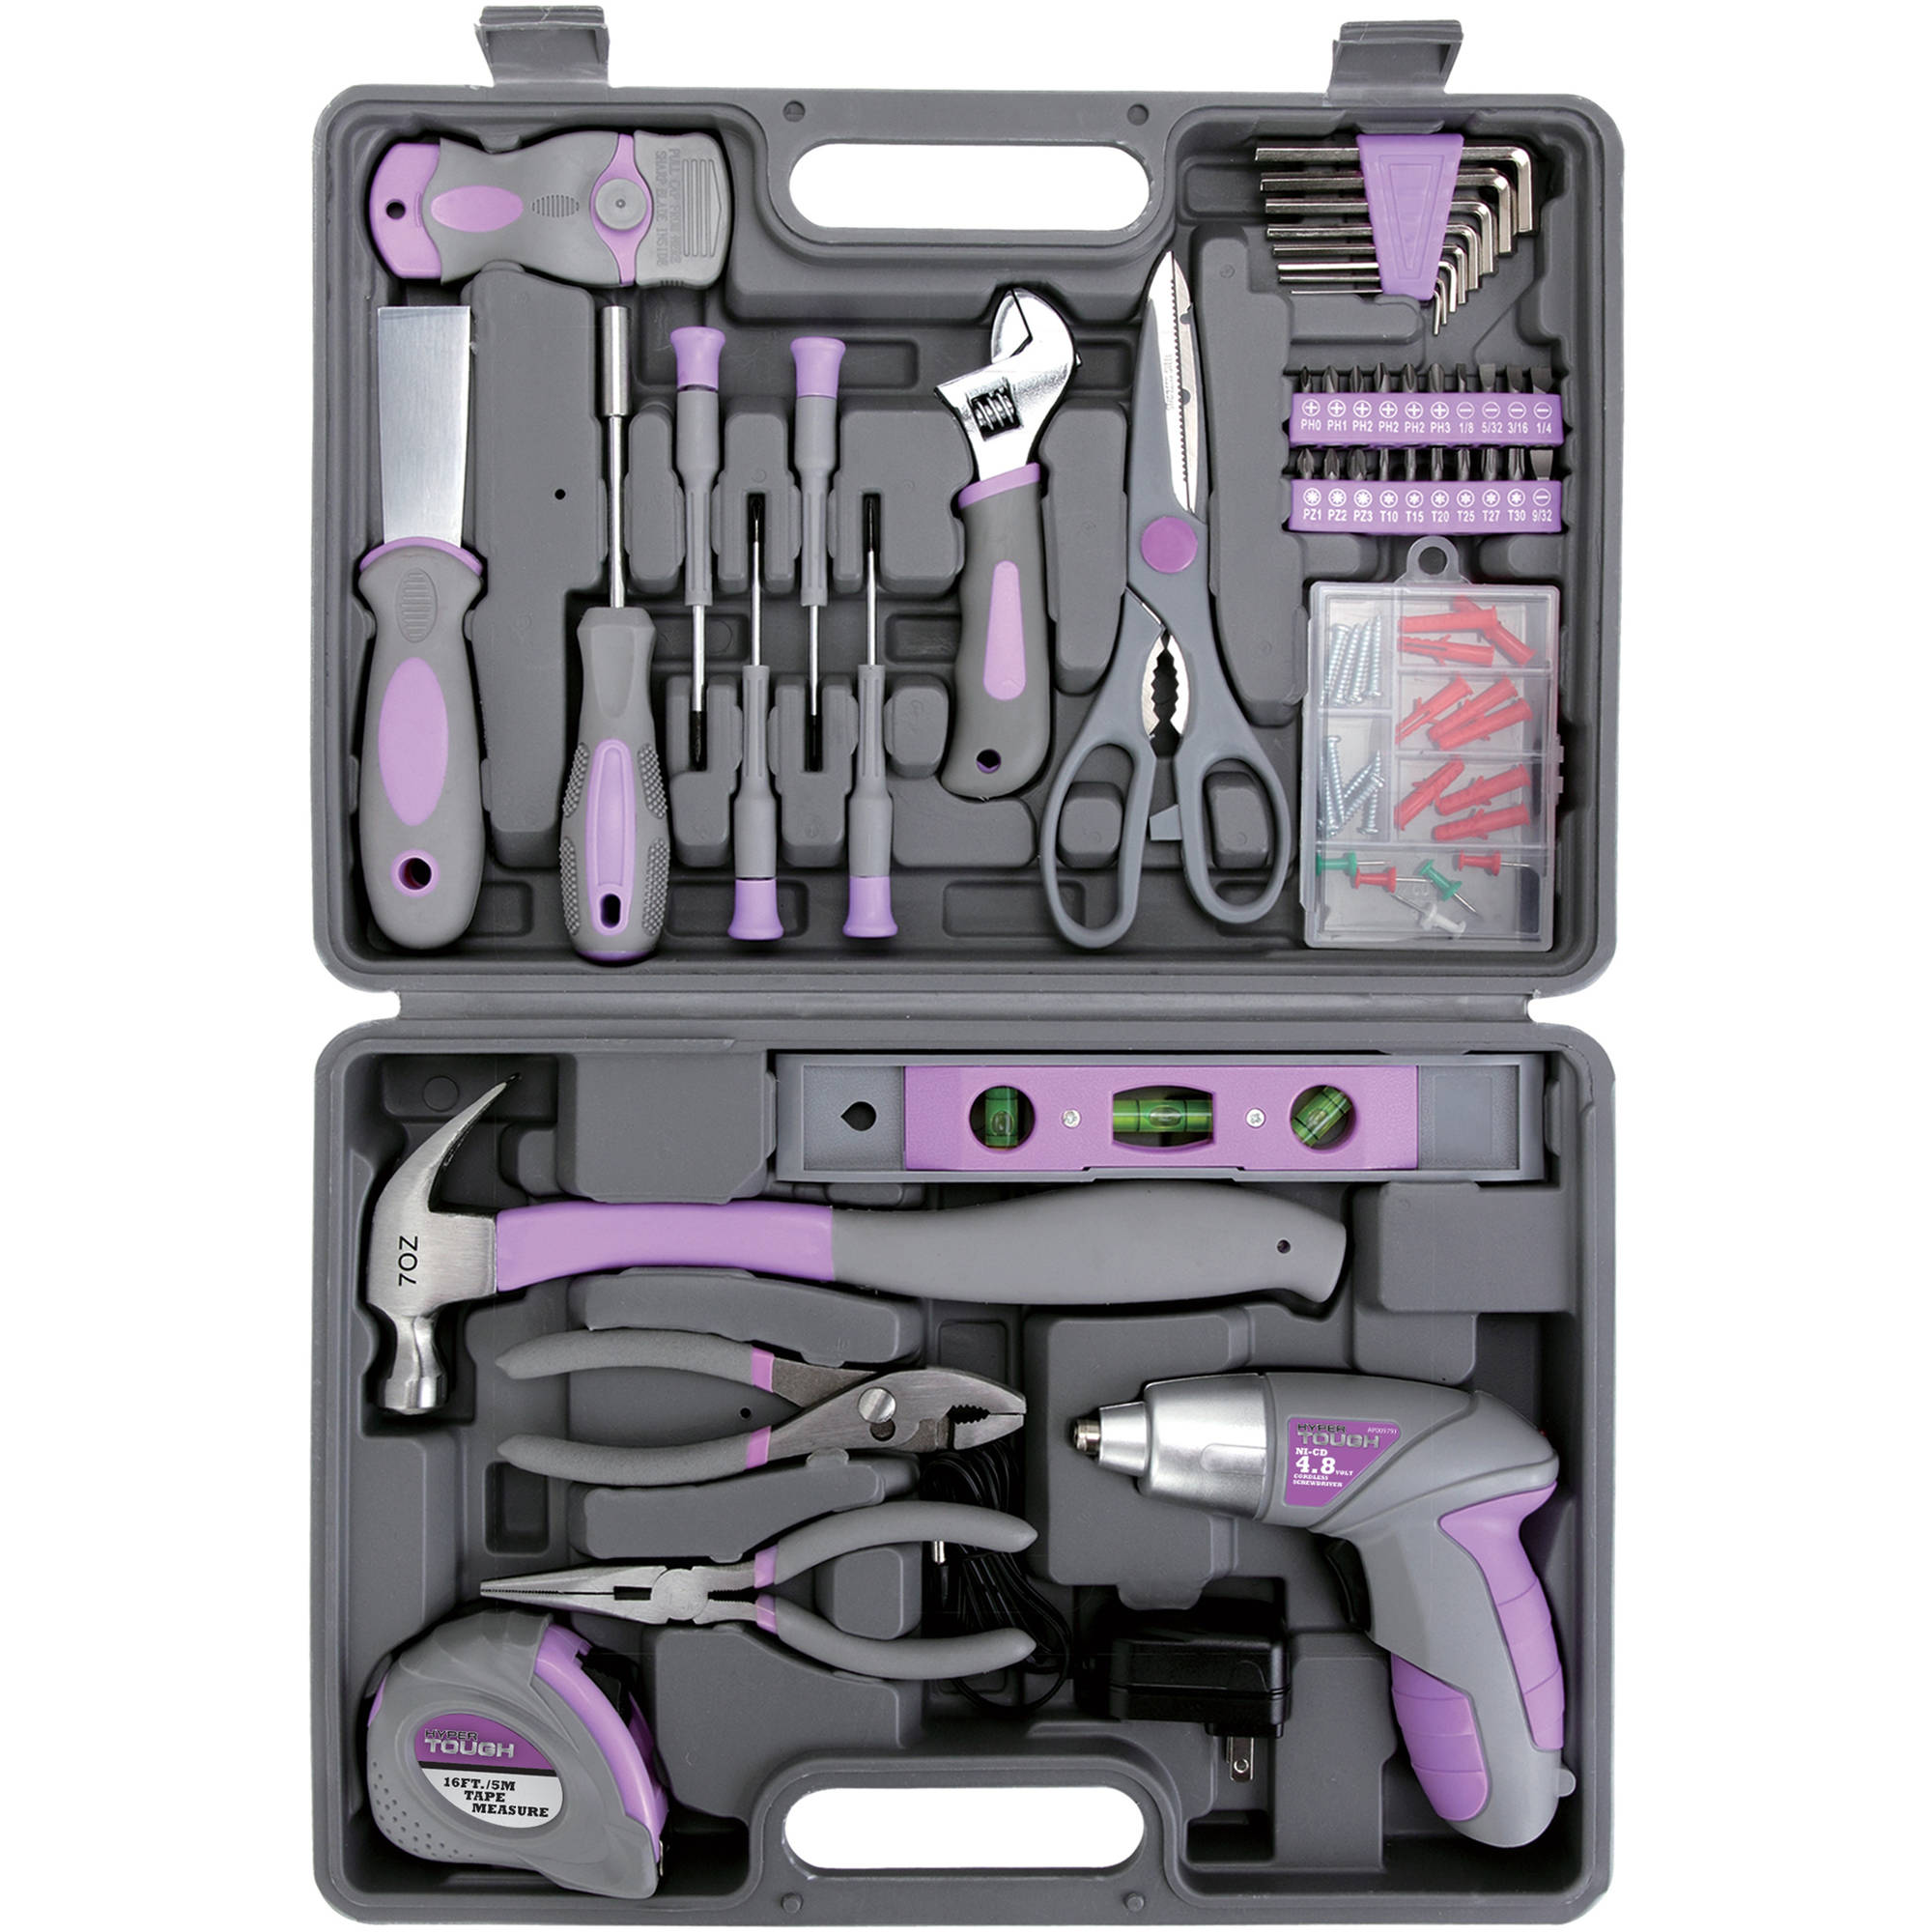 Hyper Tough UJ84133G 44-Piece Home Repair Tool Kit in Blow Mold Case